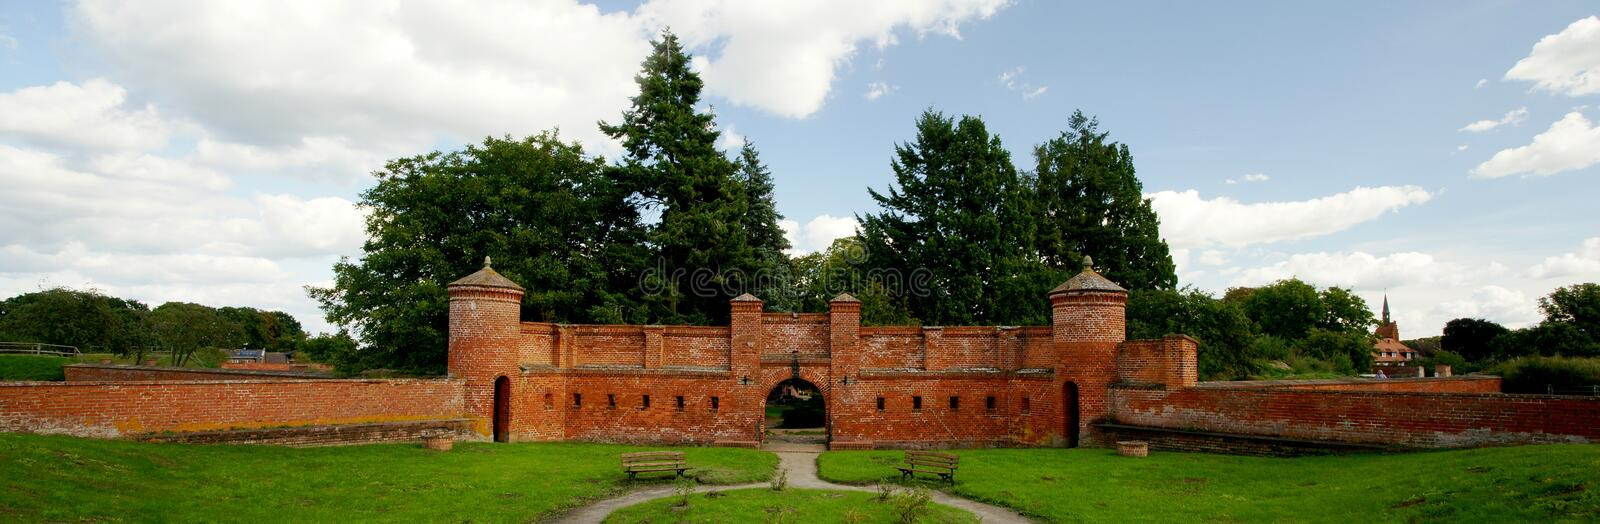 Fortification Portal. One of the portals of the pentacon-shaped midieval fortification of Doemitz, a small town on the southern flank of Mecklenburg-Vorpommern ( stock photography